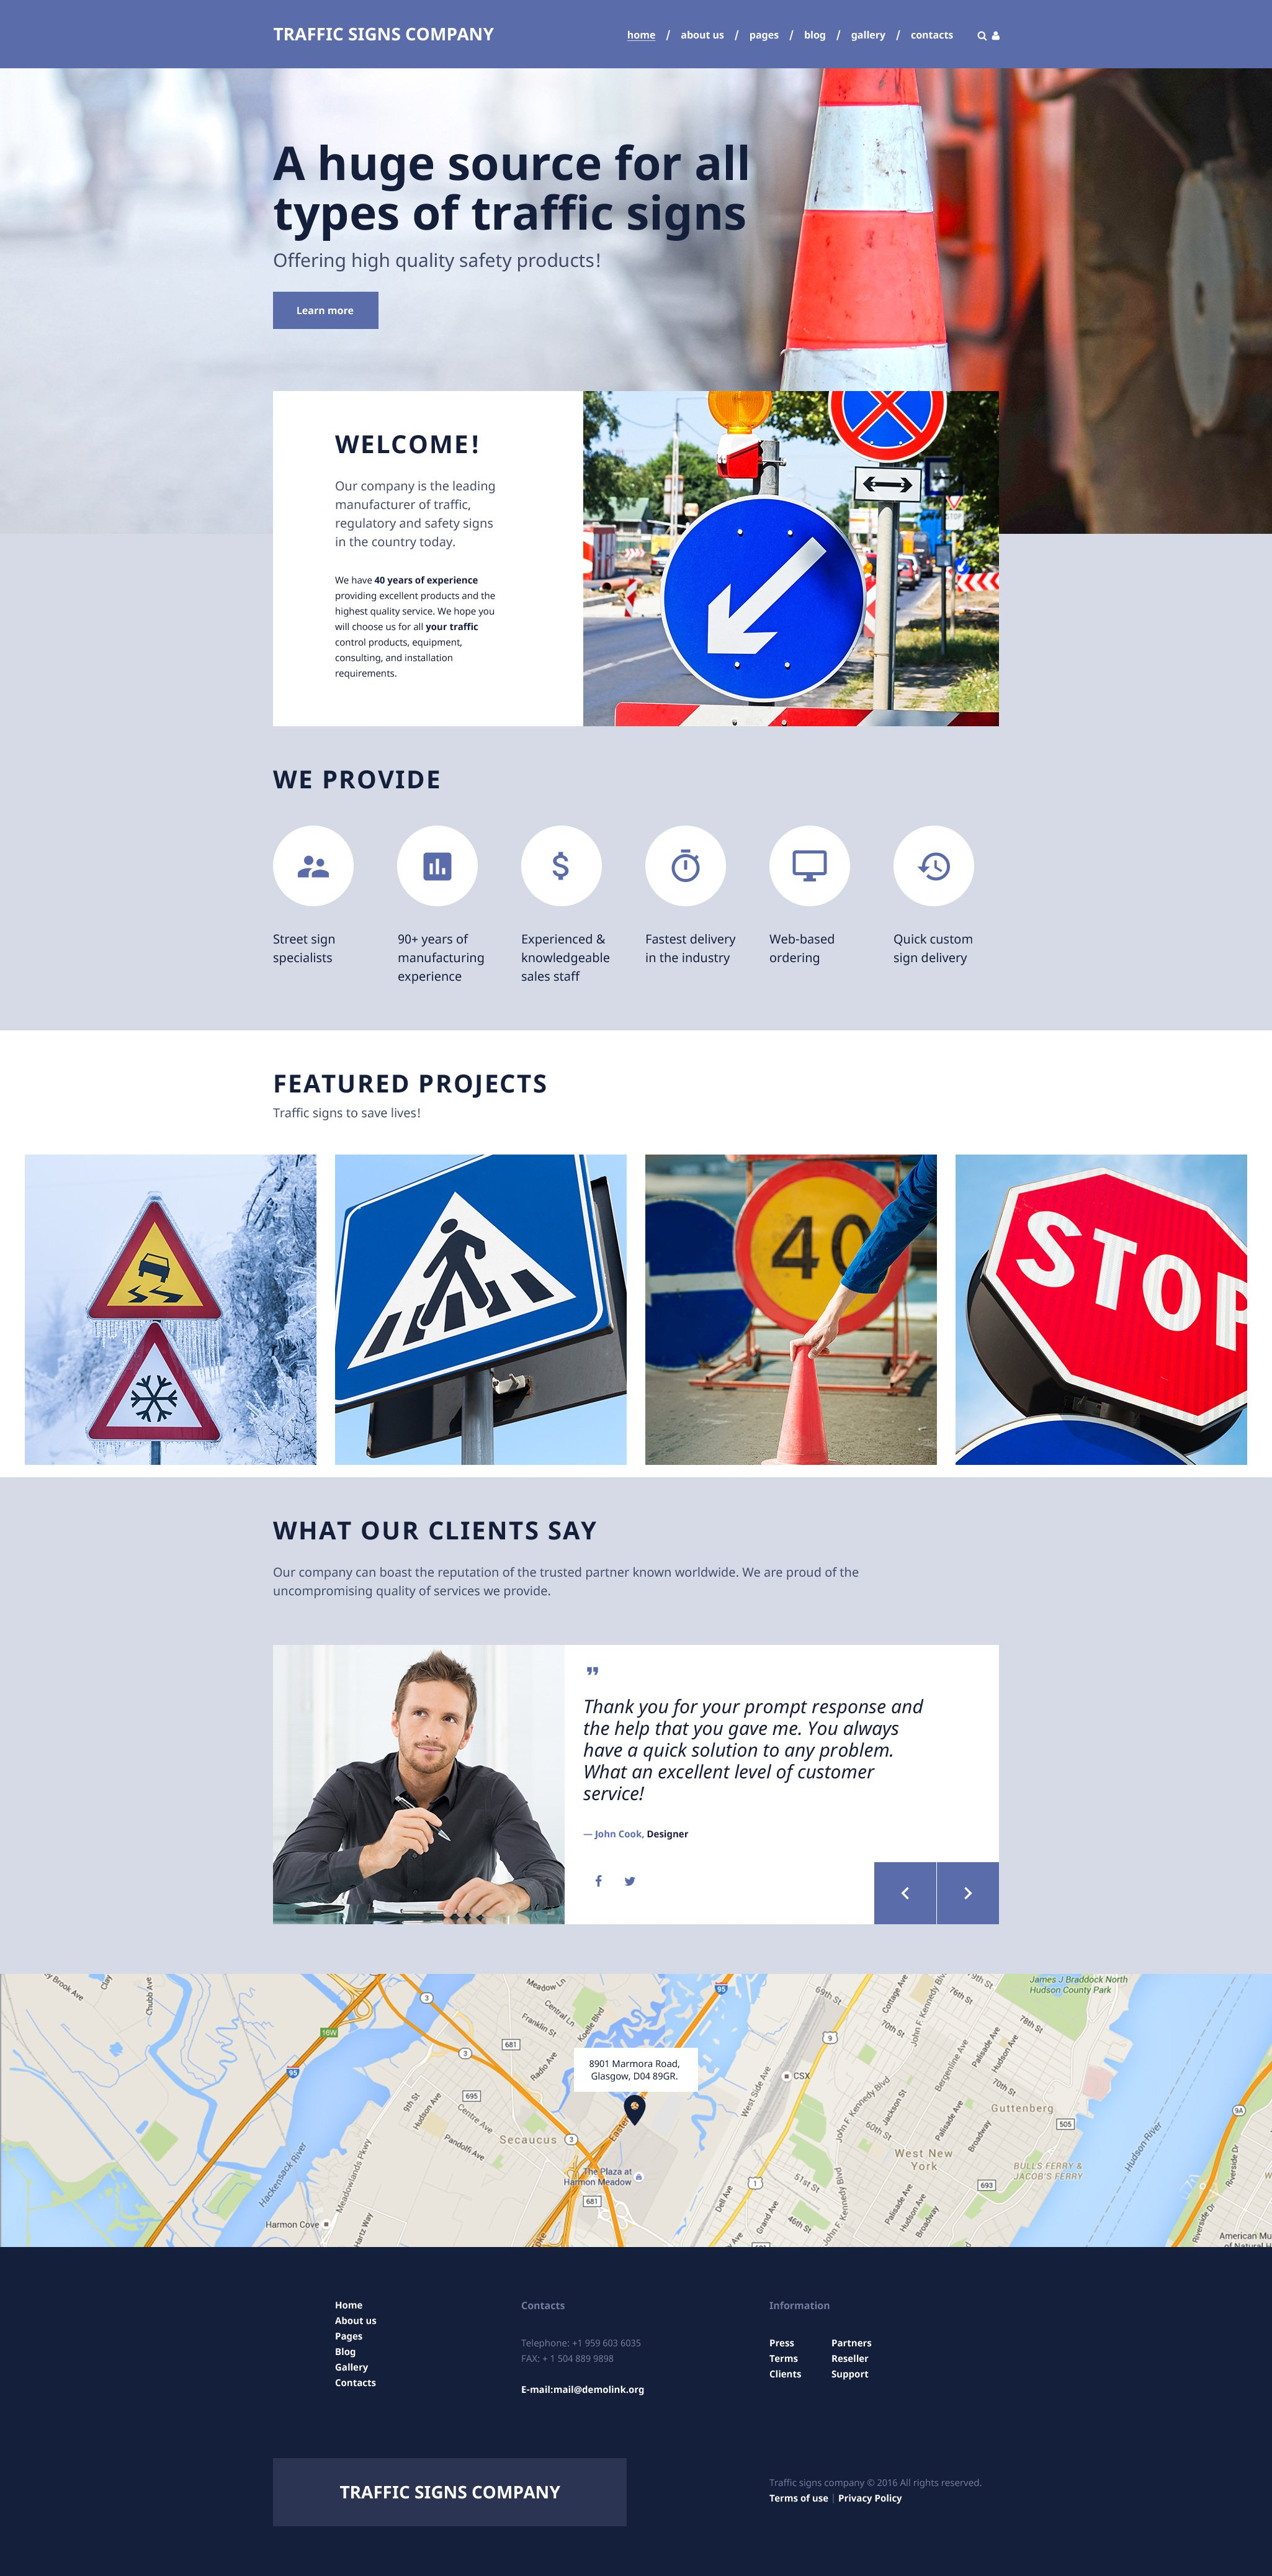 Road Construction - Paving Multipage №57749